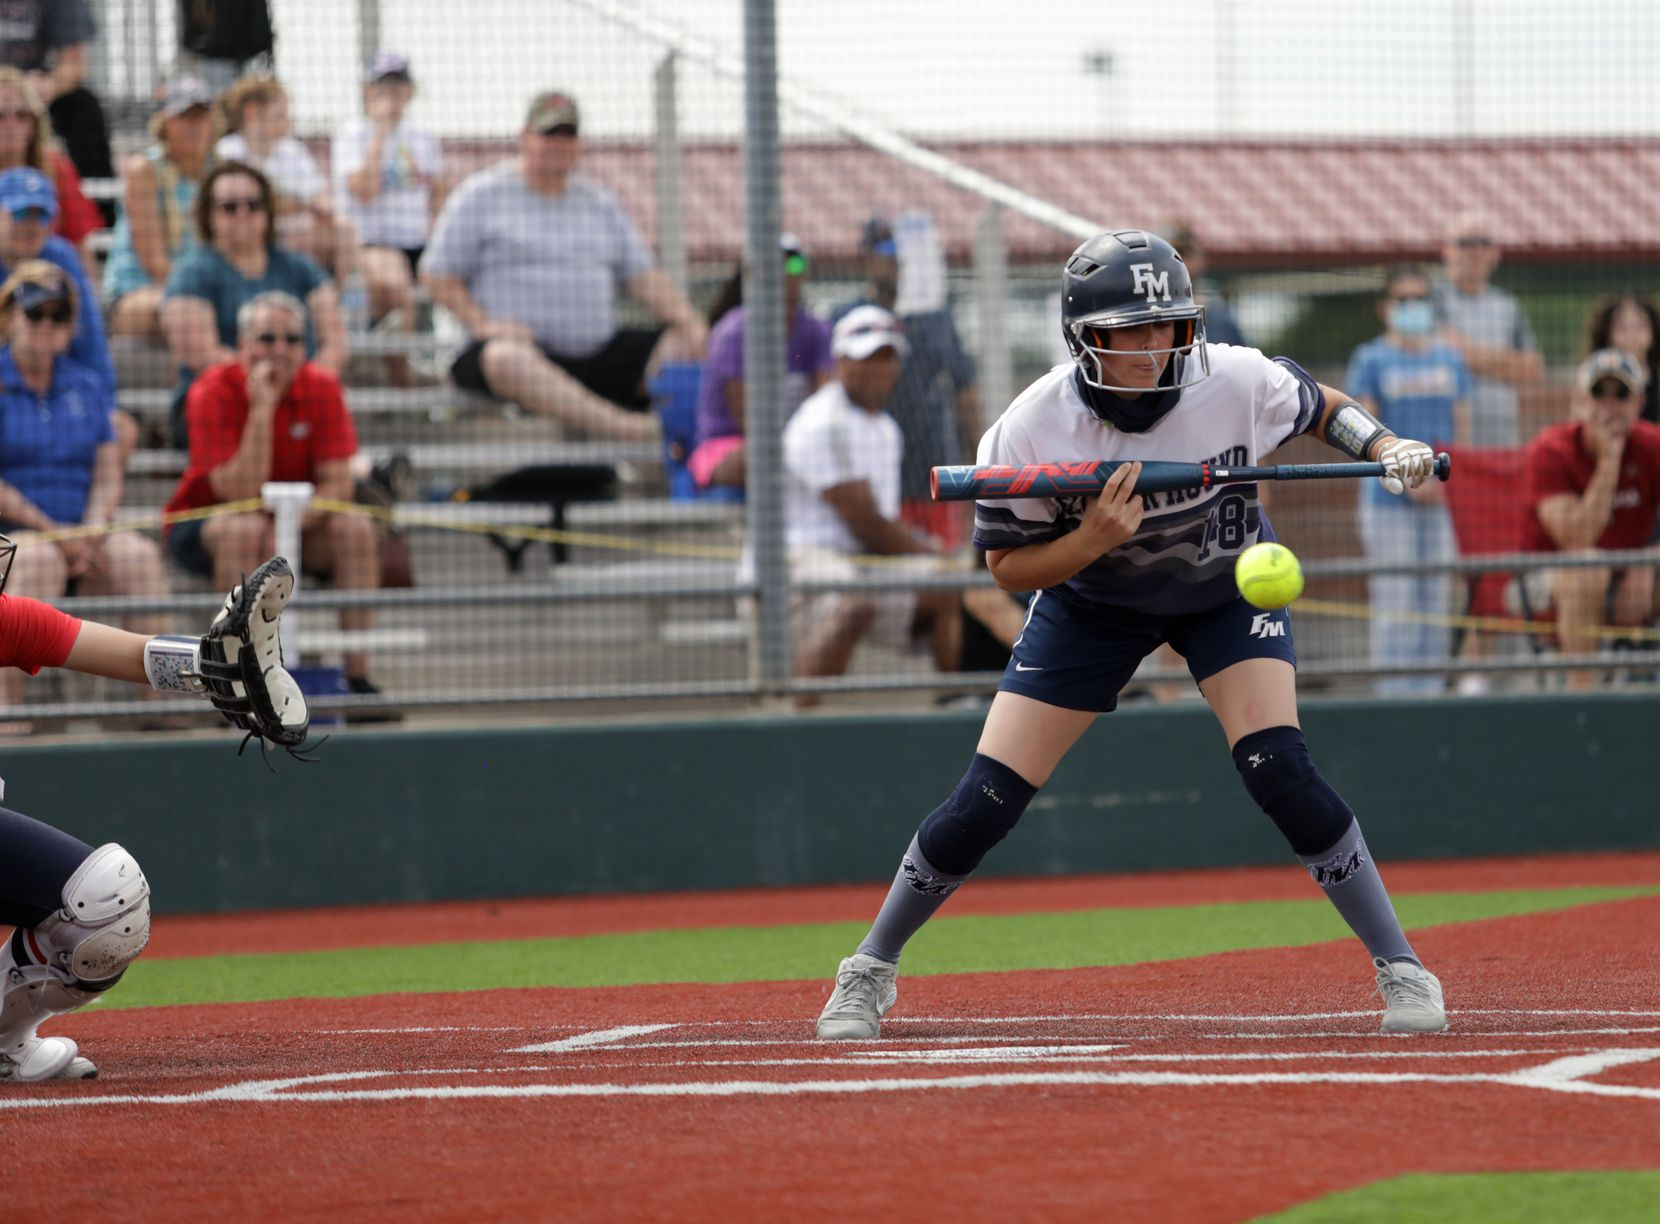 Flower Mound High School player #18, Jordyn Holland, holds back from a bunt during a softball playoff game against Allen High School at Allen High School in Allen, TX, on May 15, 2021. (Jason Janik/Special Contributor)